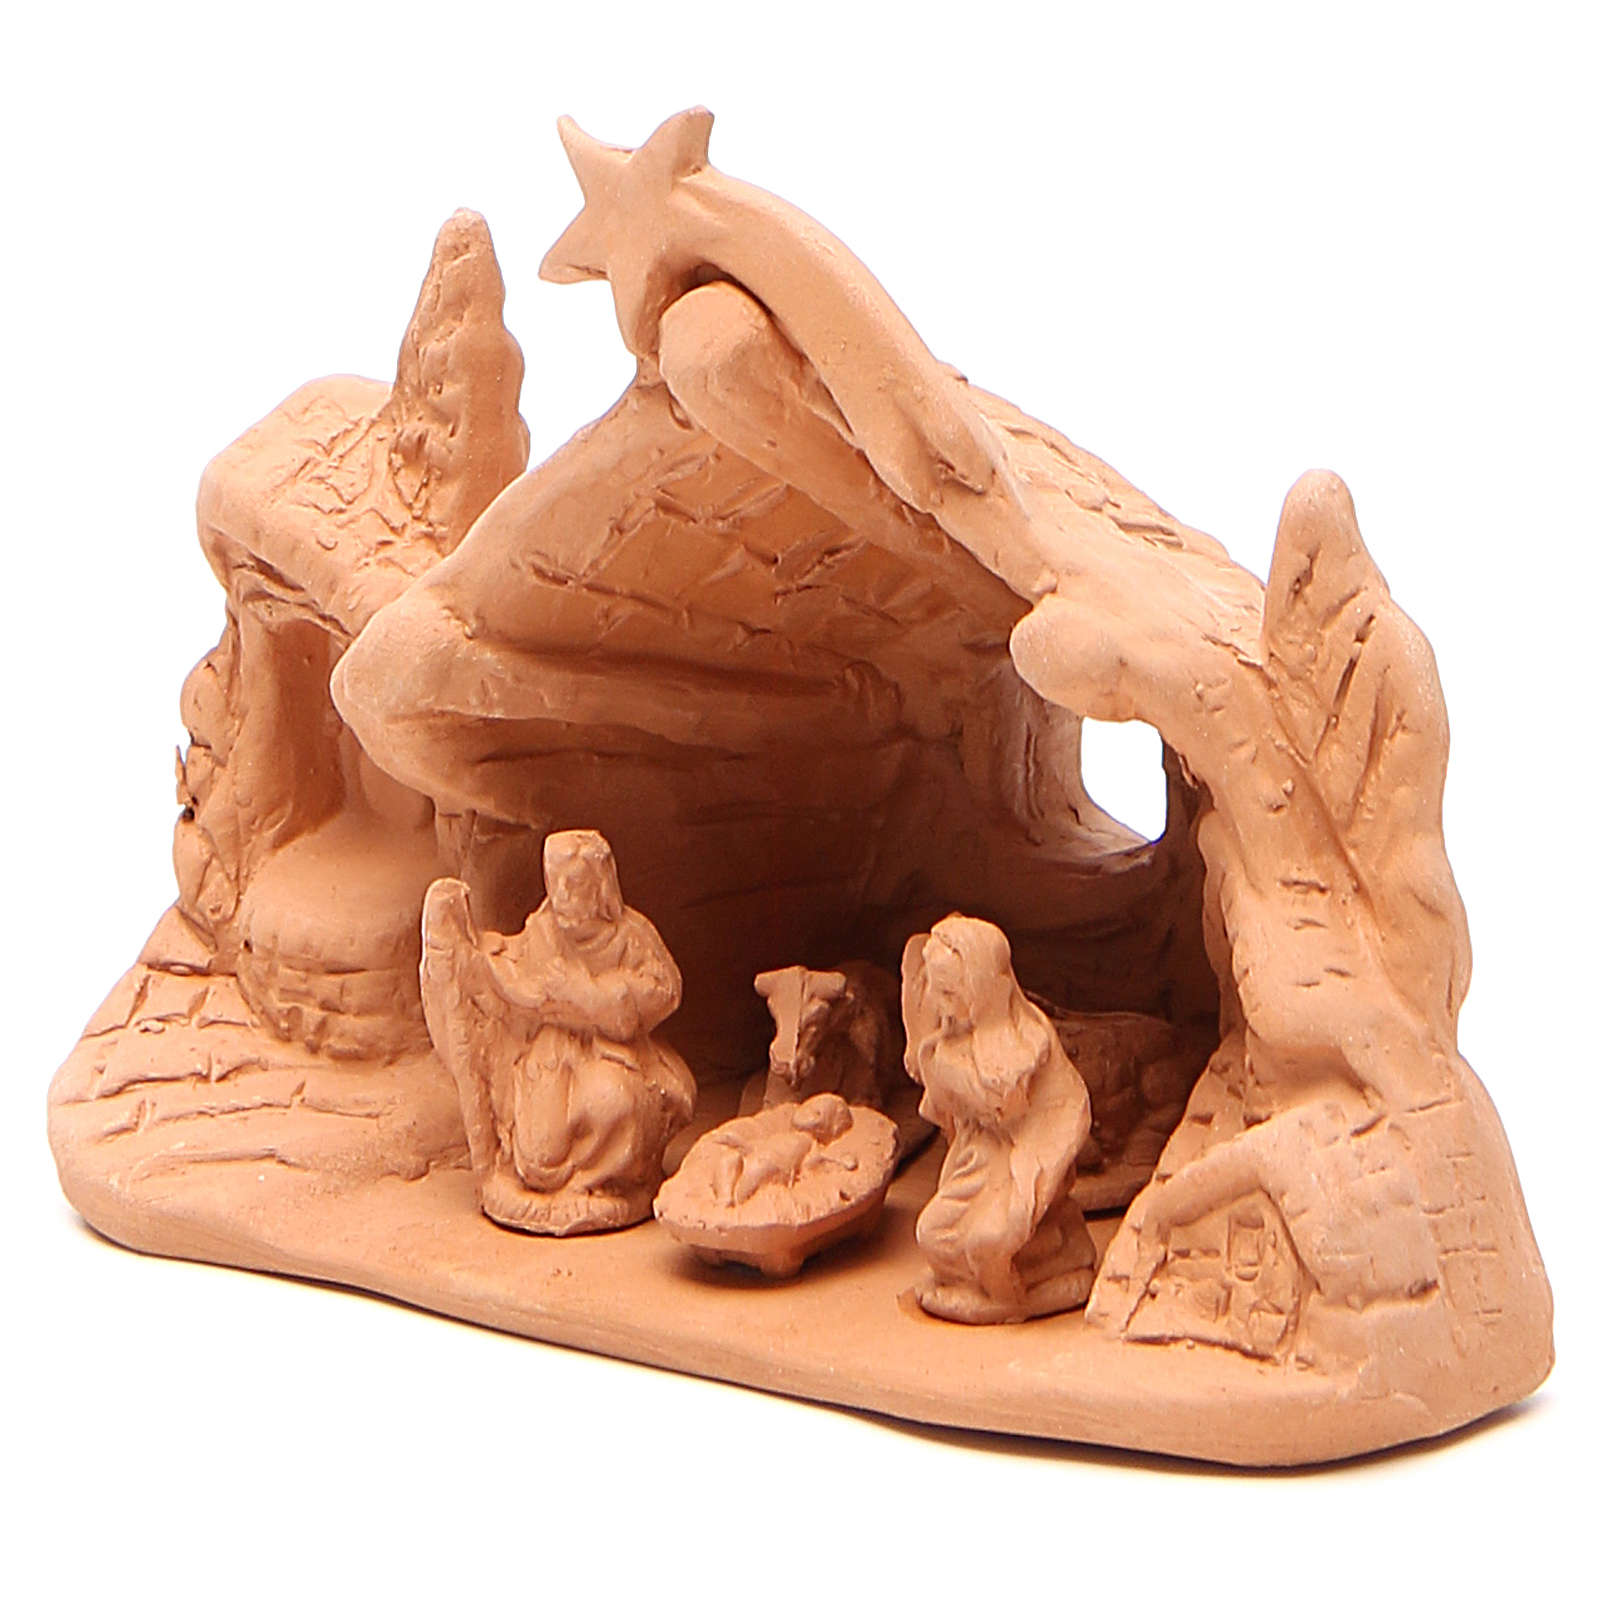 Natività con Grotta in terracotta h. 10x14x6 cm 4